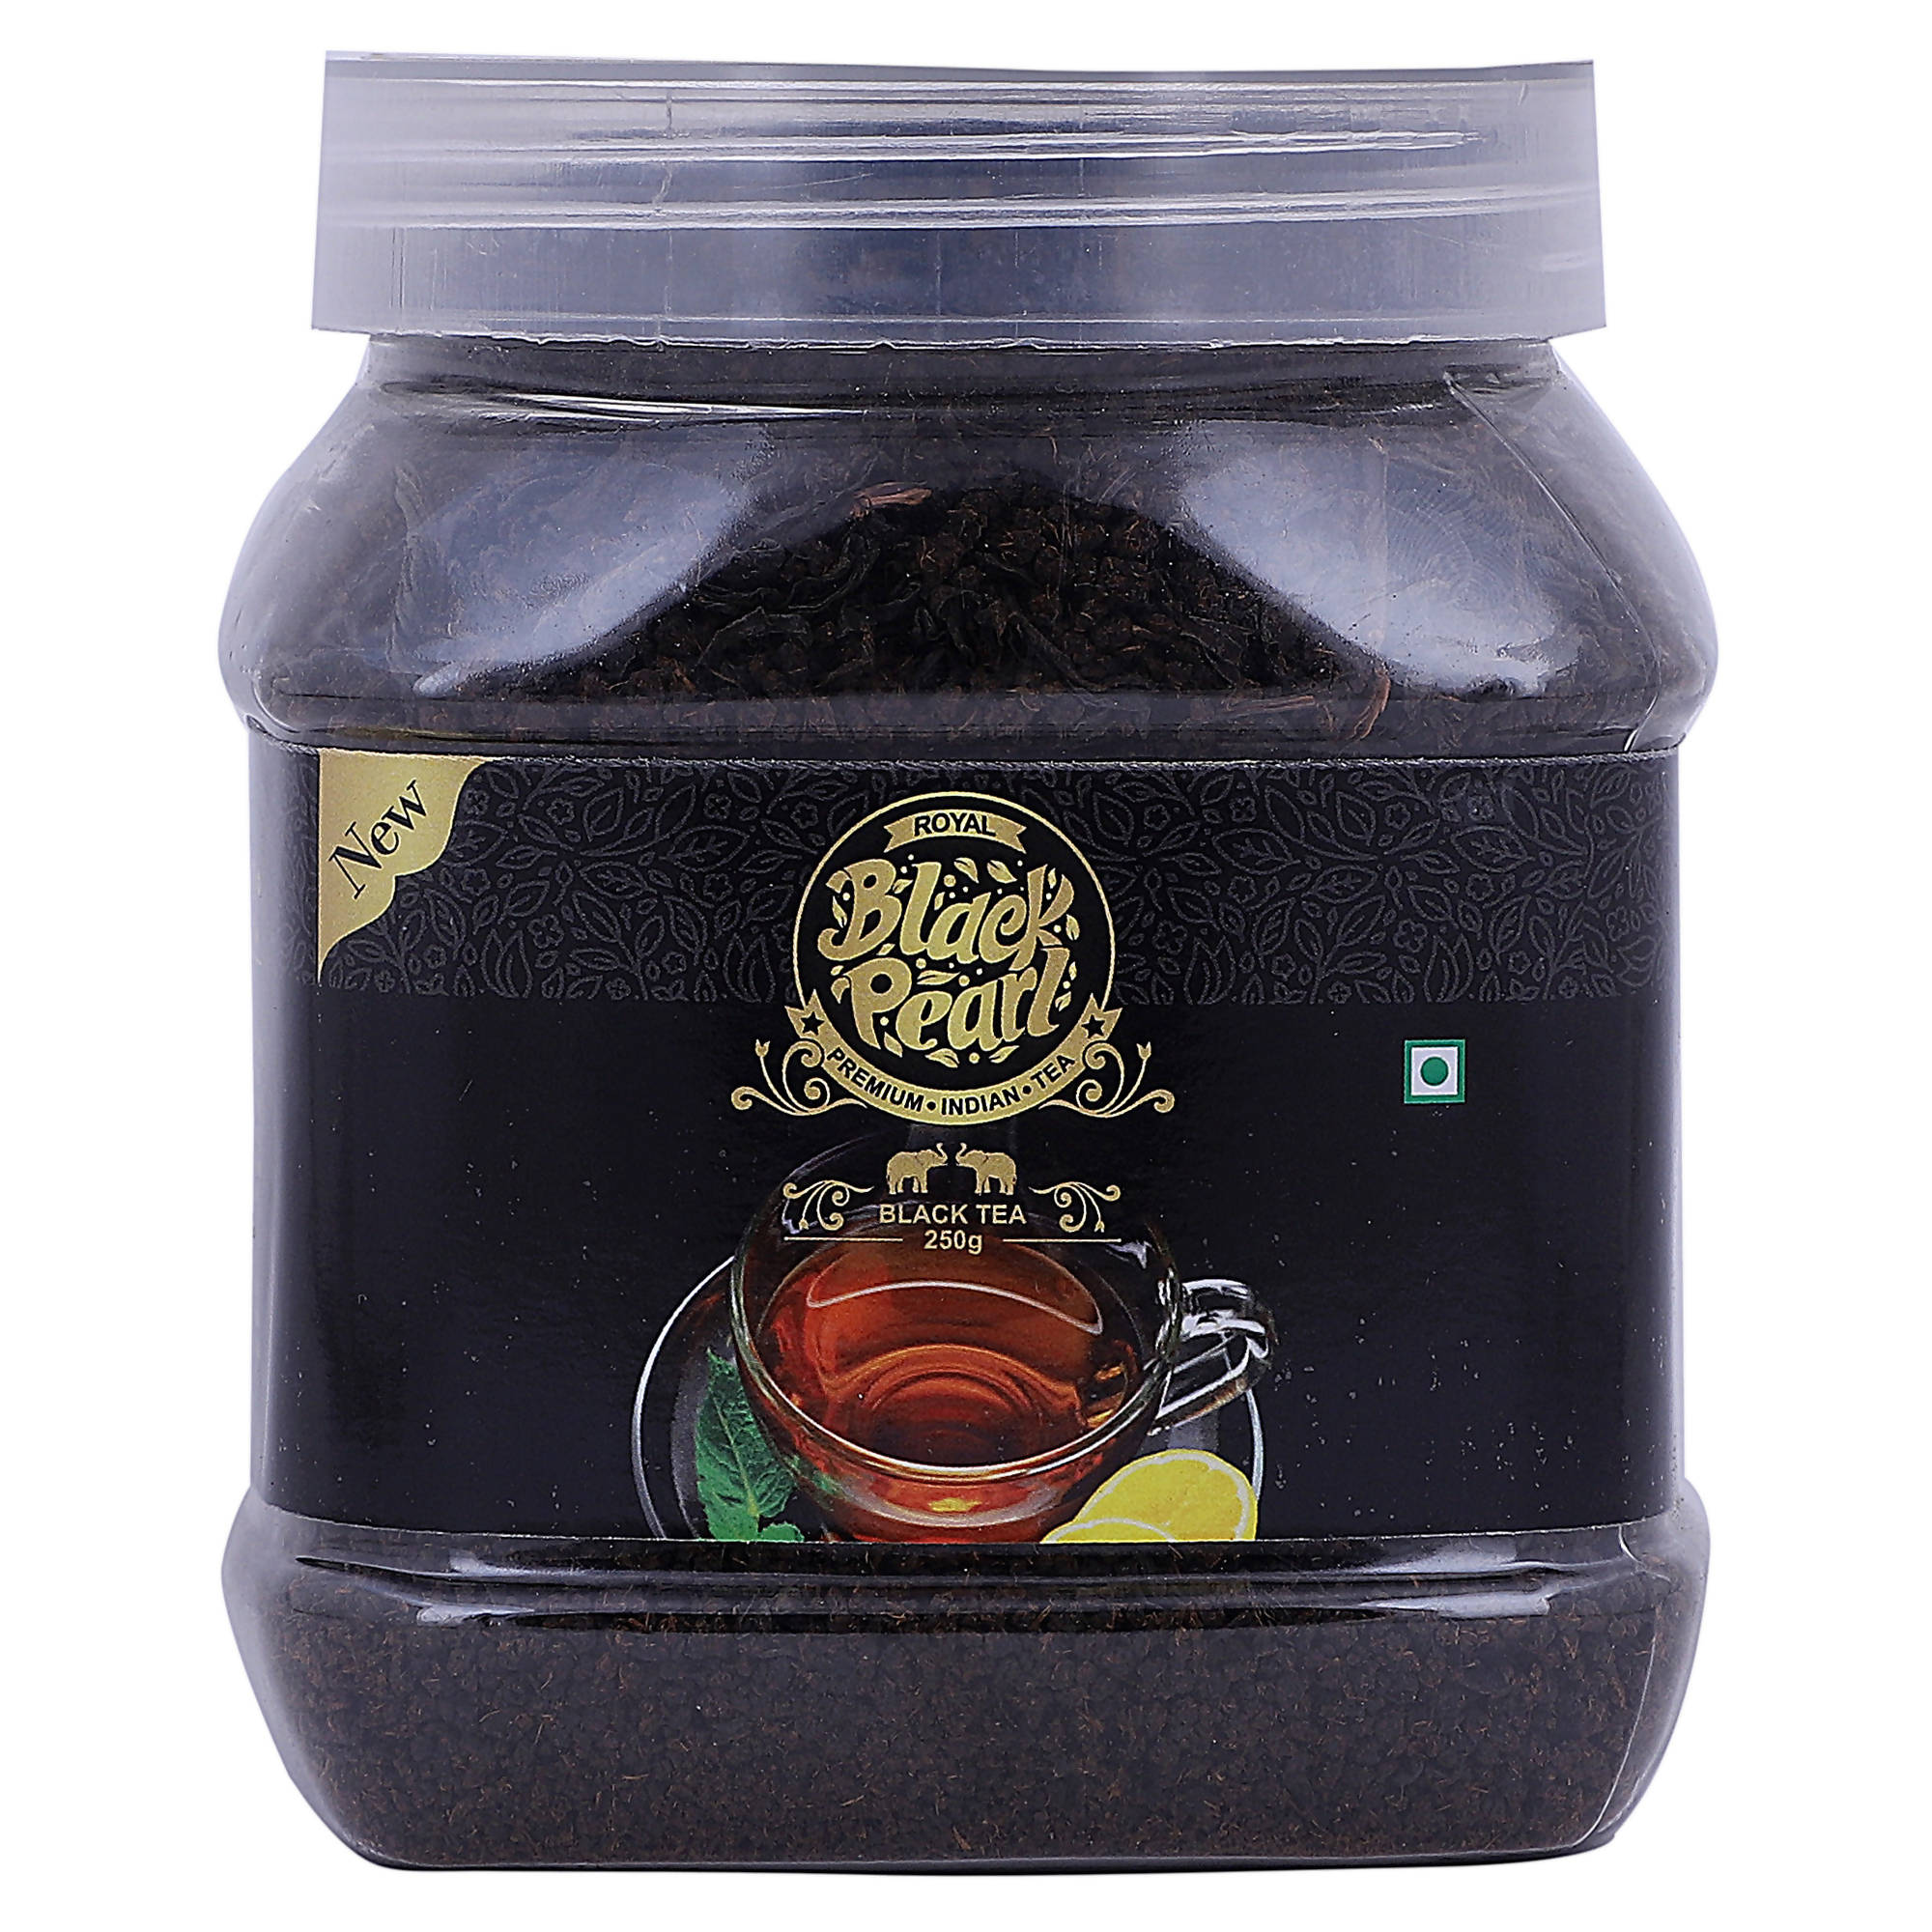 Royal Black Pearl Original Assam Black Tea Plastic Bottle (250 g)